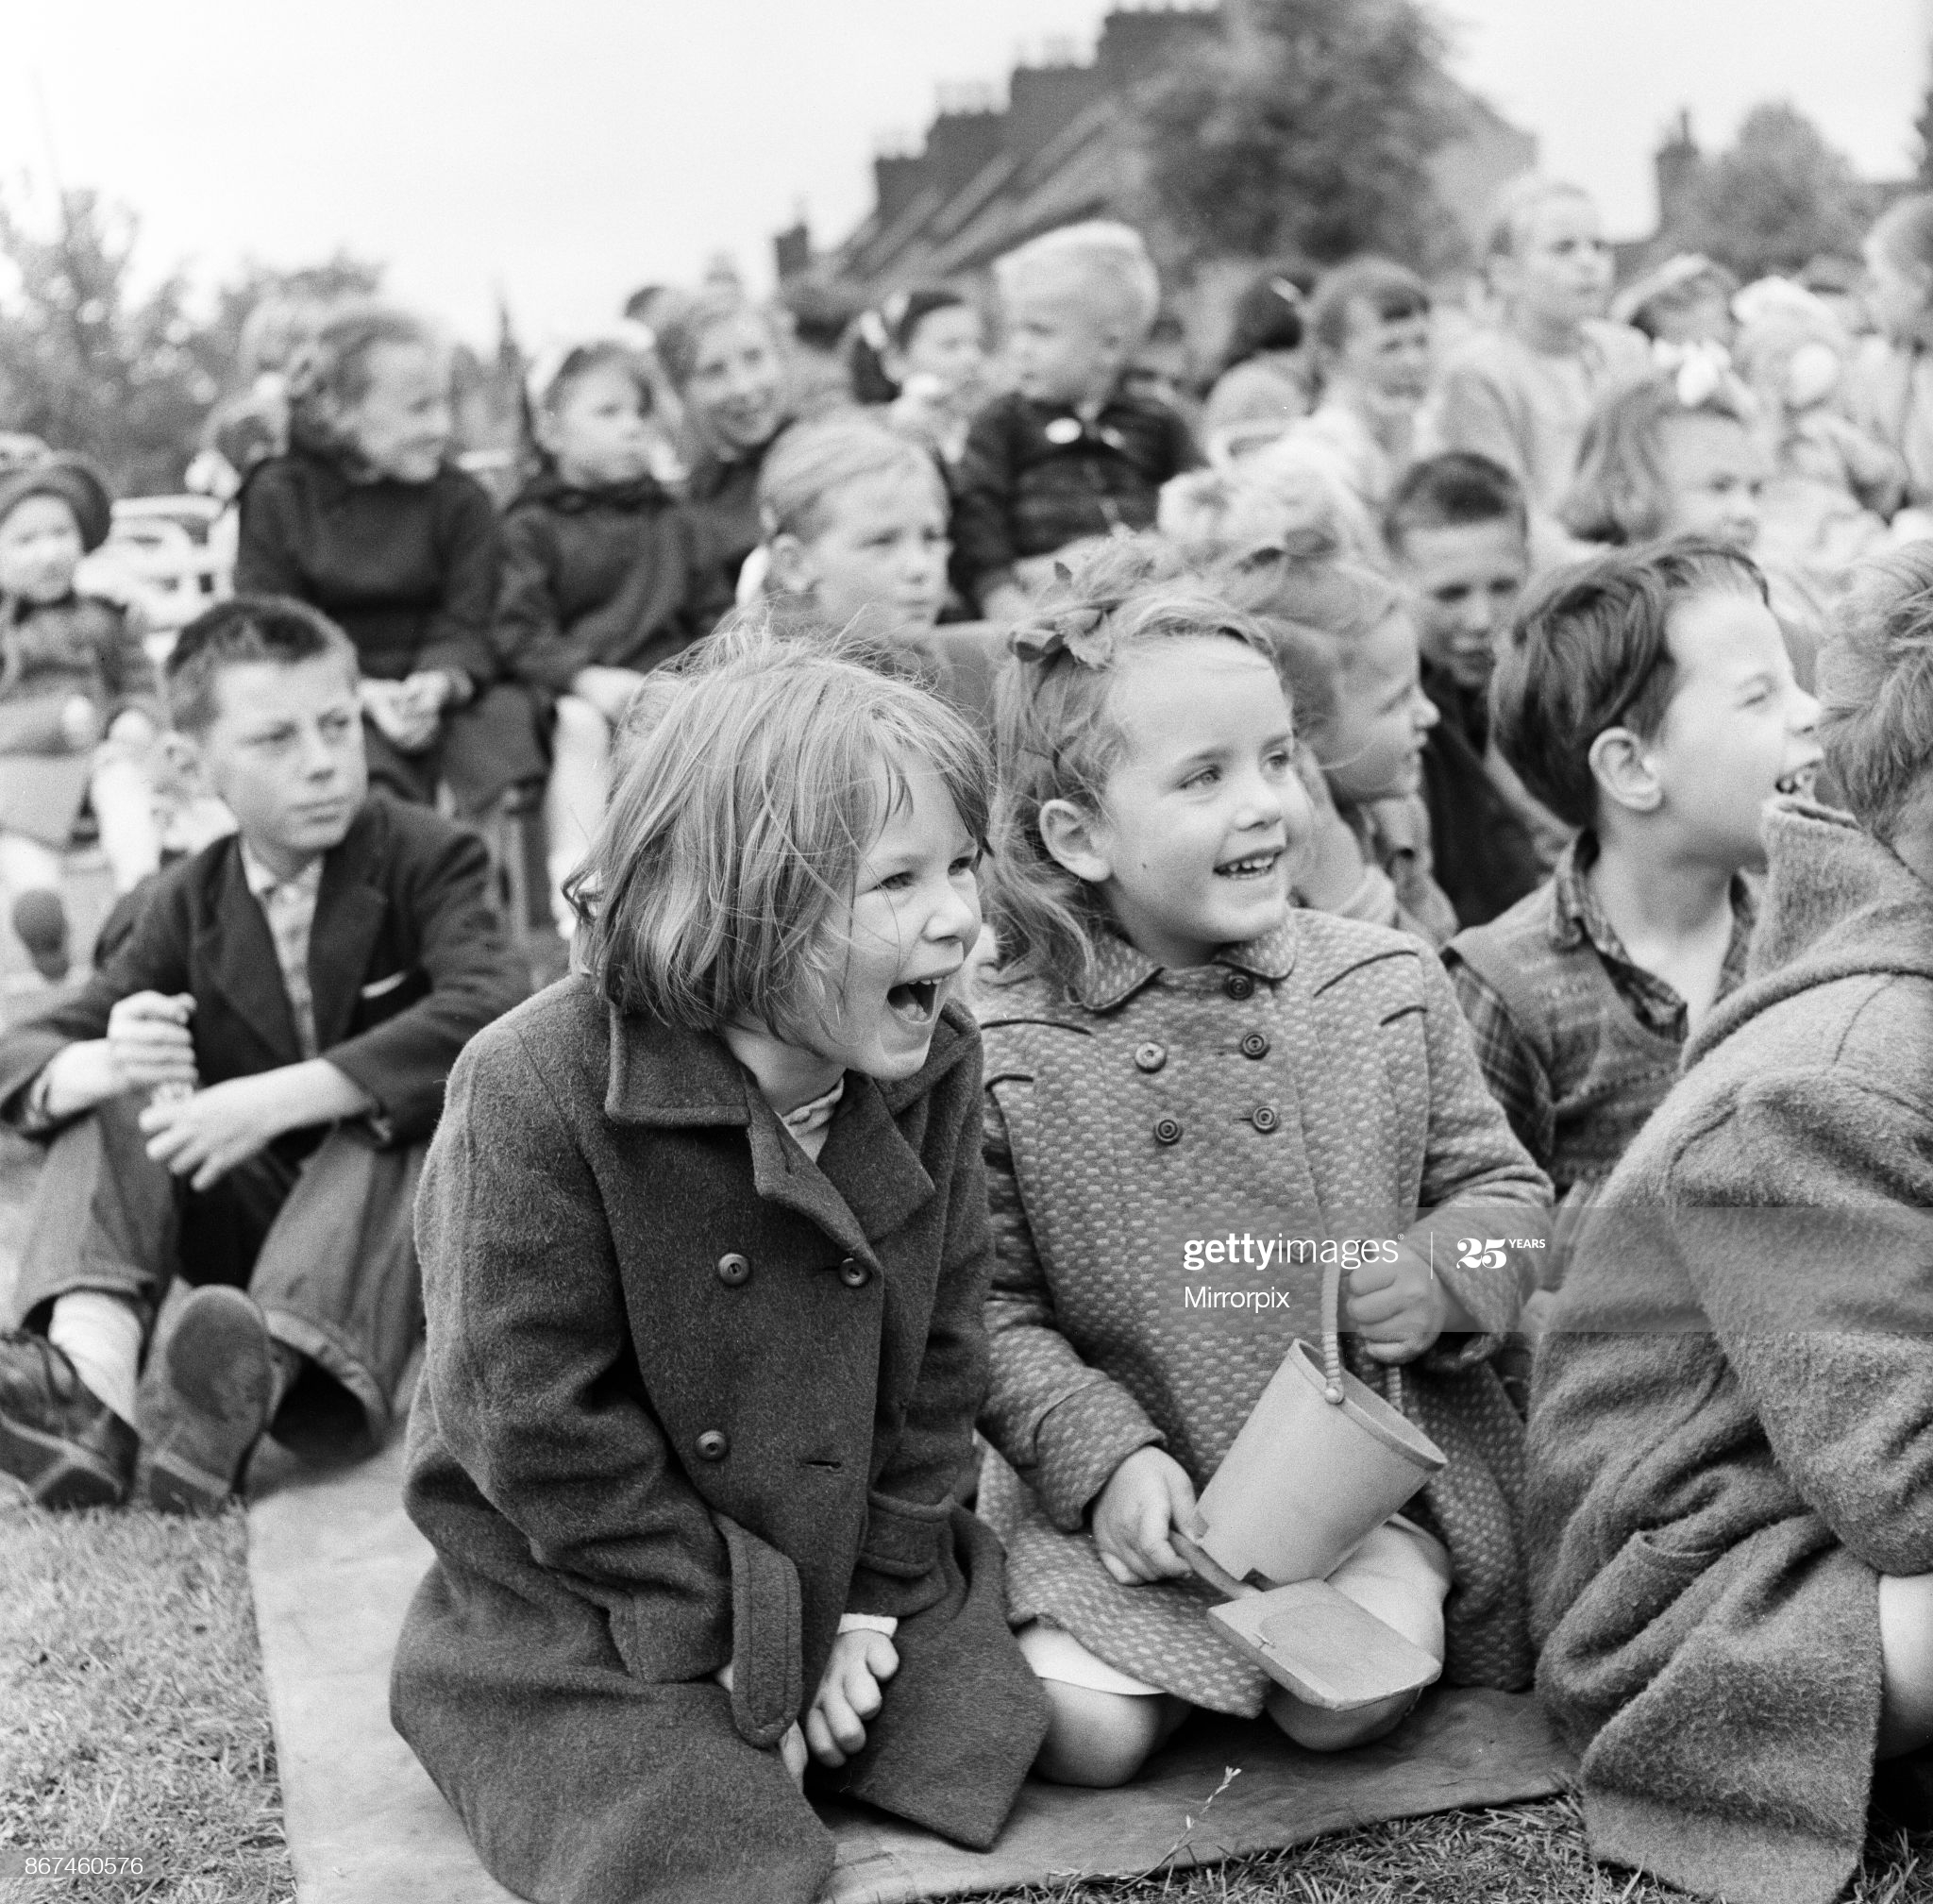 Spa Road, Punch and Judy show in Bermondsey Spa 1956.  X.png